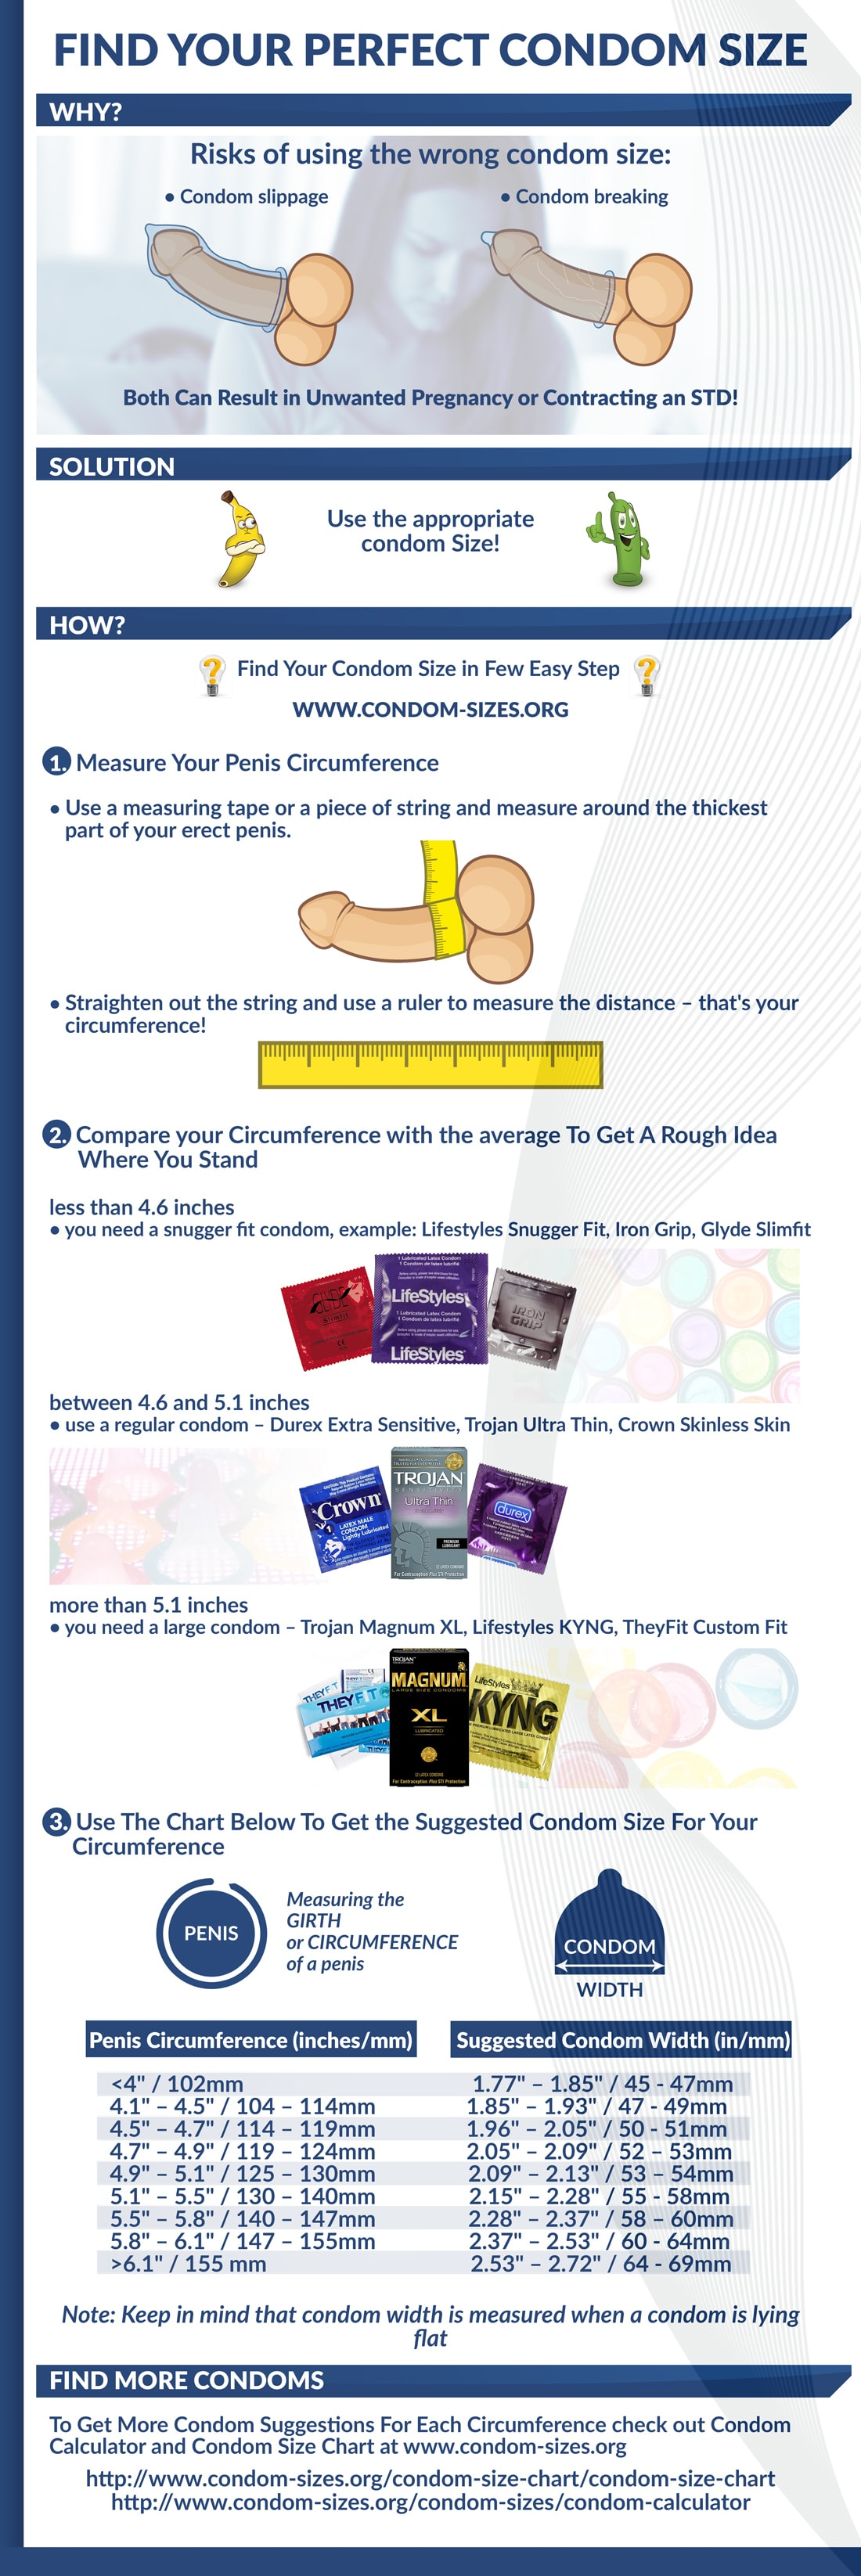 find-your-perfect-condom-size-infographic-plaza